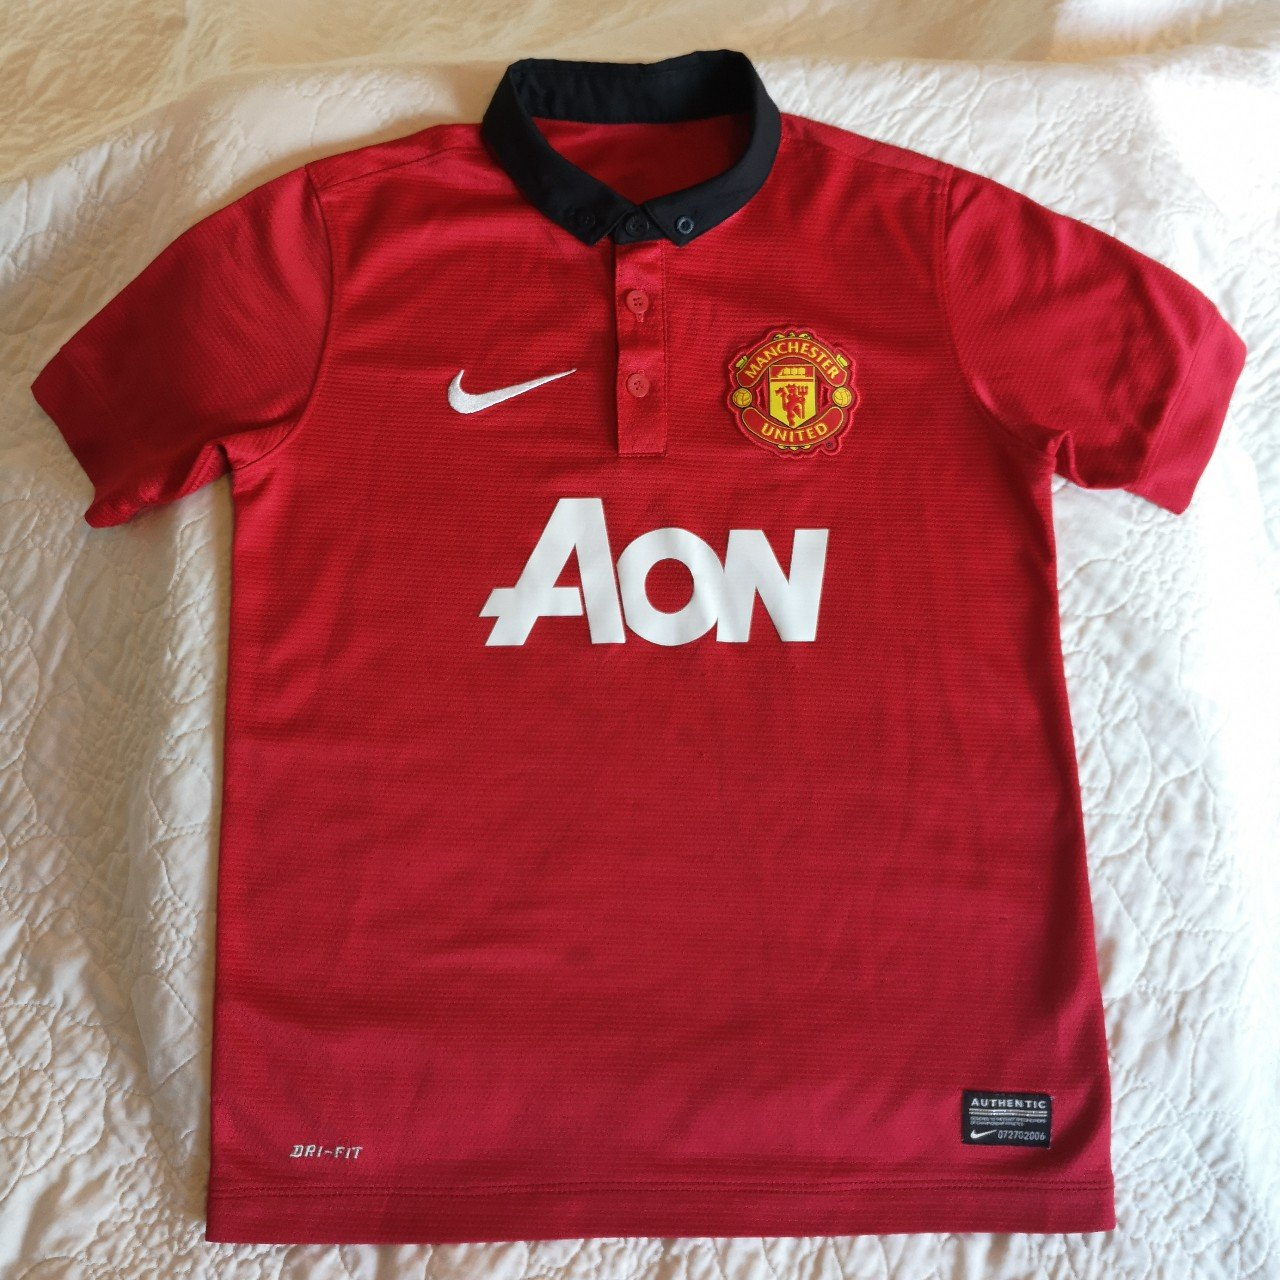 d19d3d6c9 @littlepiper. 29 days ago. United Kingdom, GB. Kids Official Manchester  United FC football shirt. Size S, best fit ...